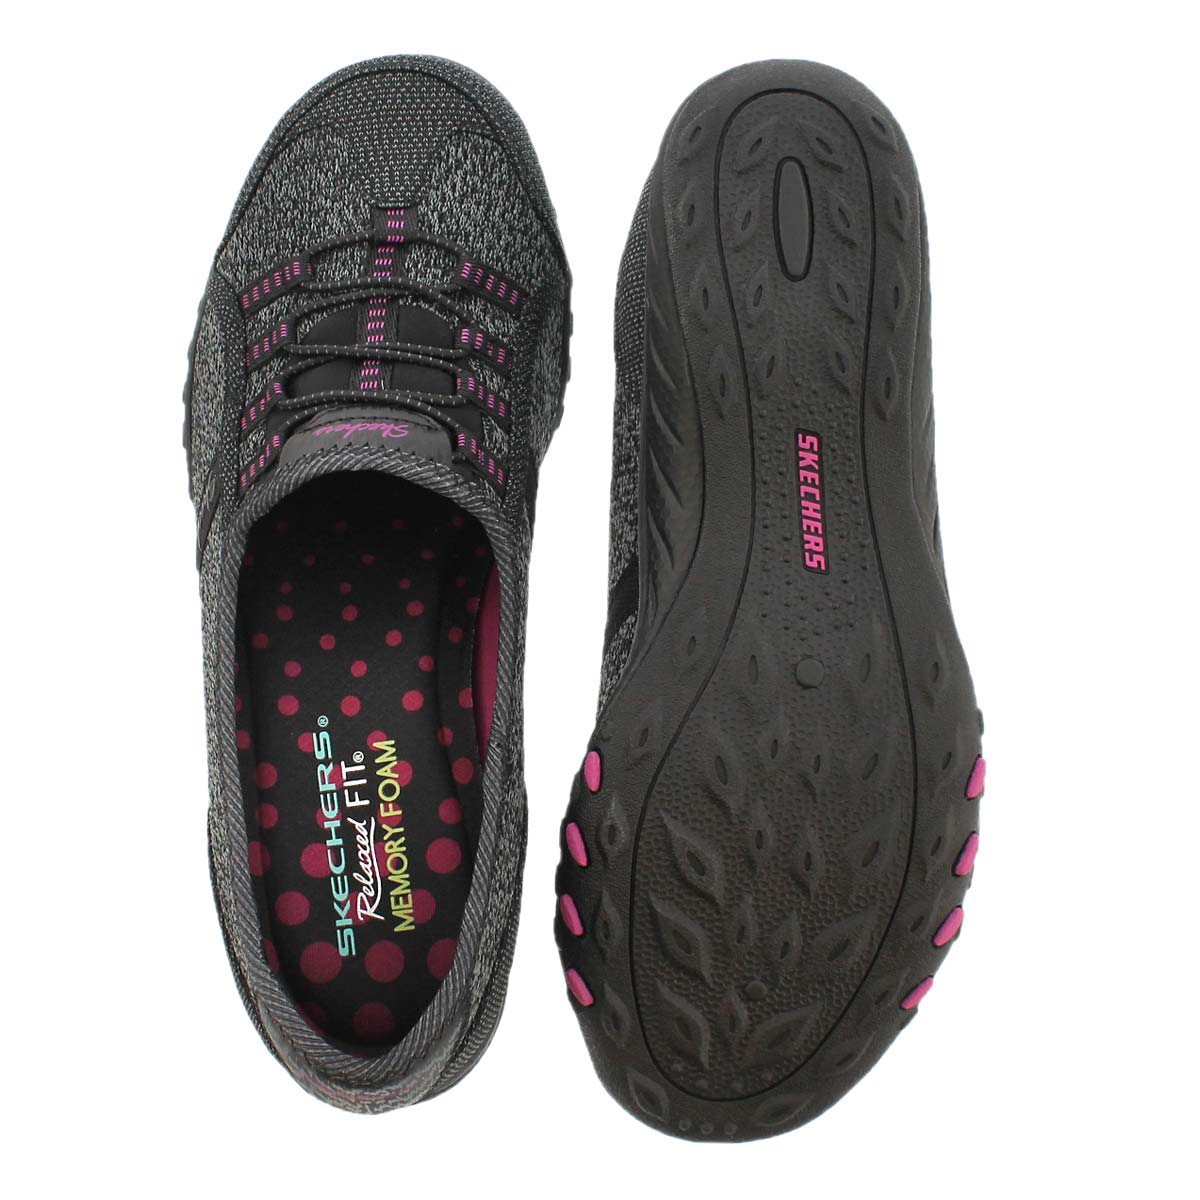 Espadrille Breathe-Easy, noir/rose, fem